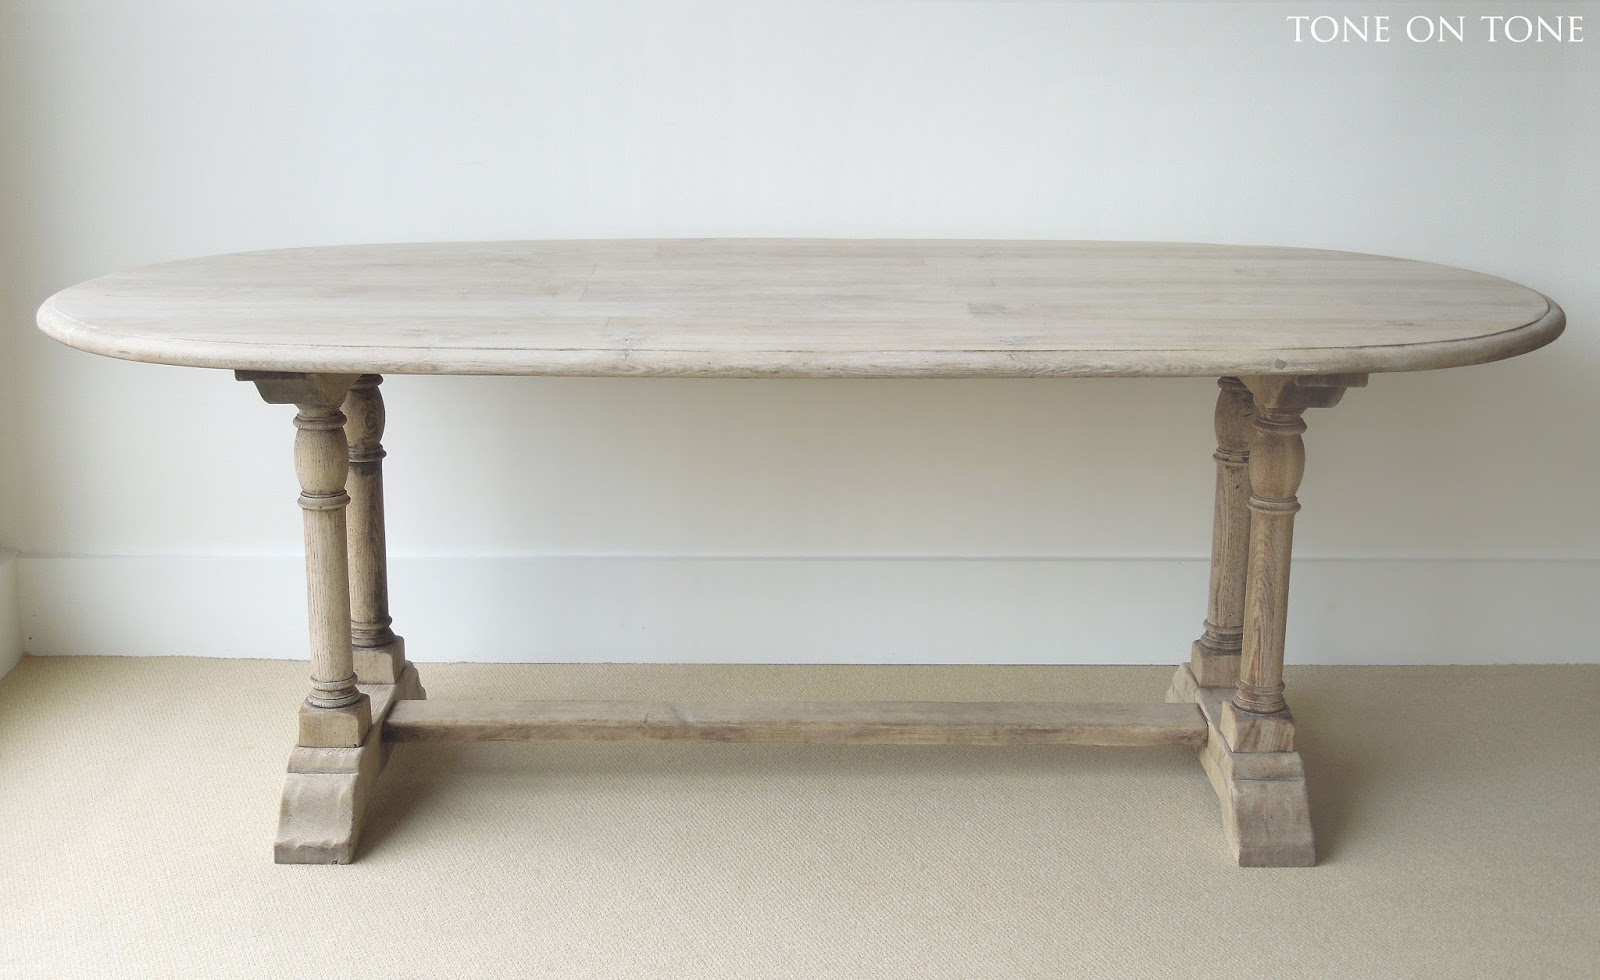 Lime Wash Coffee Table Tone On Tone Fall Accents